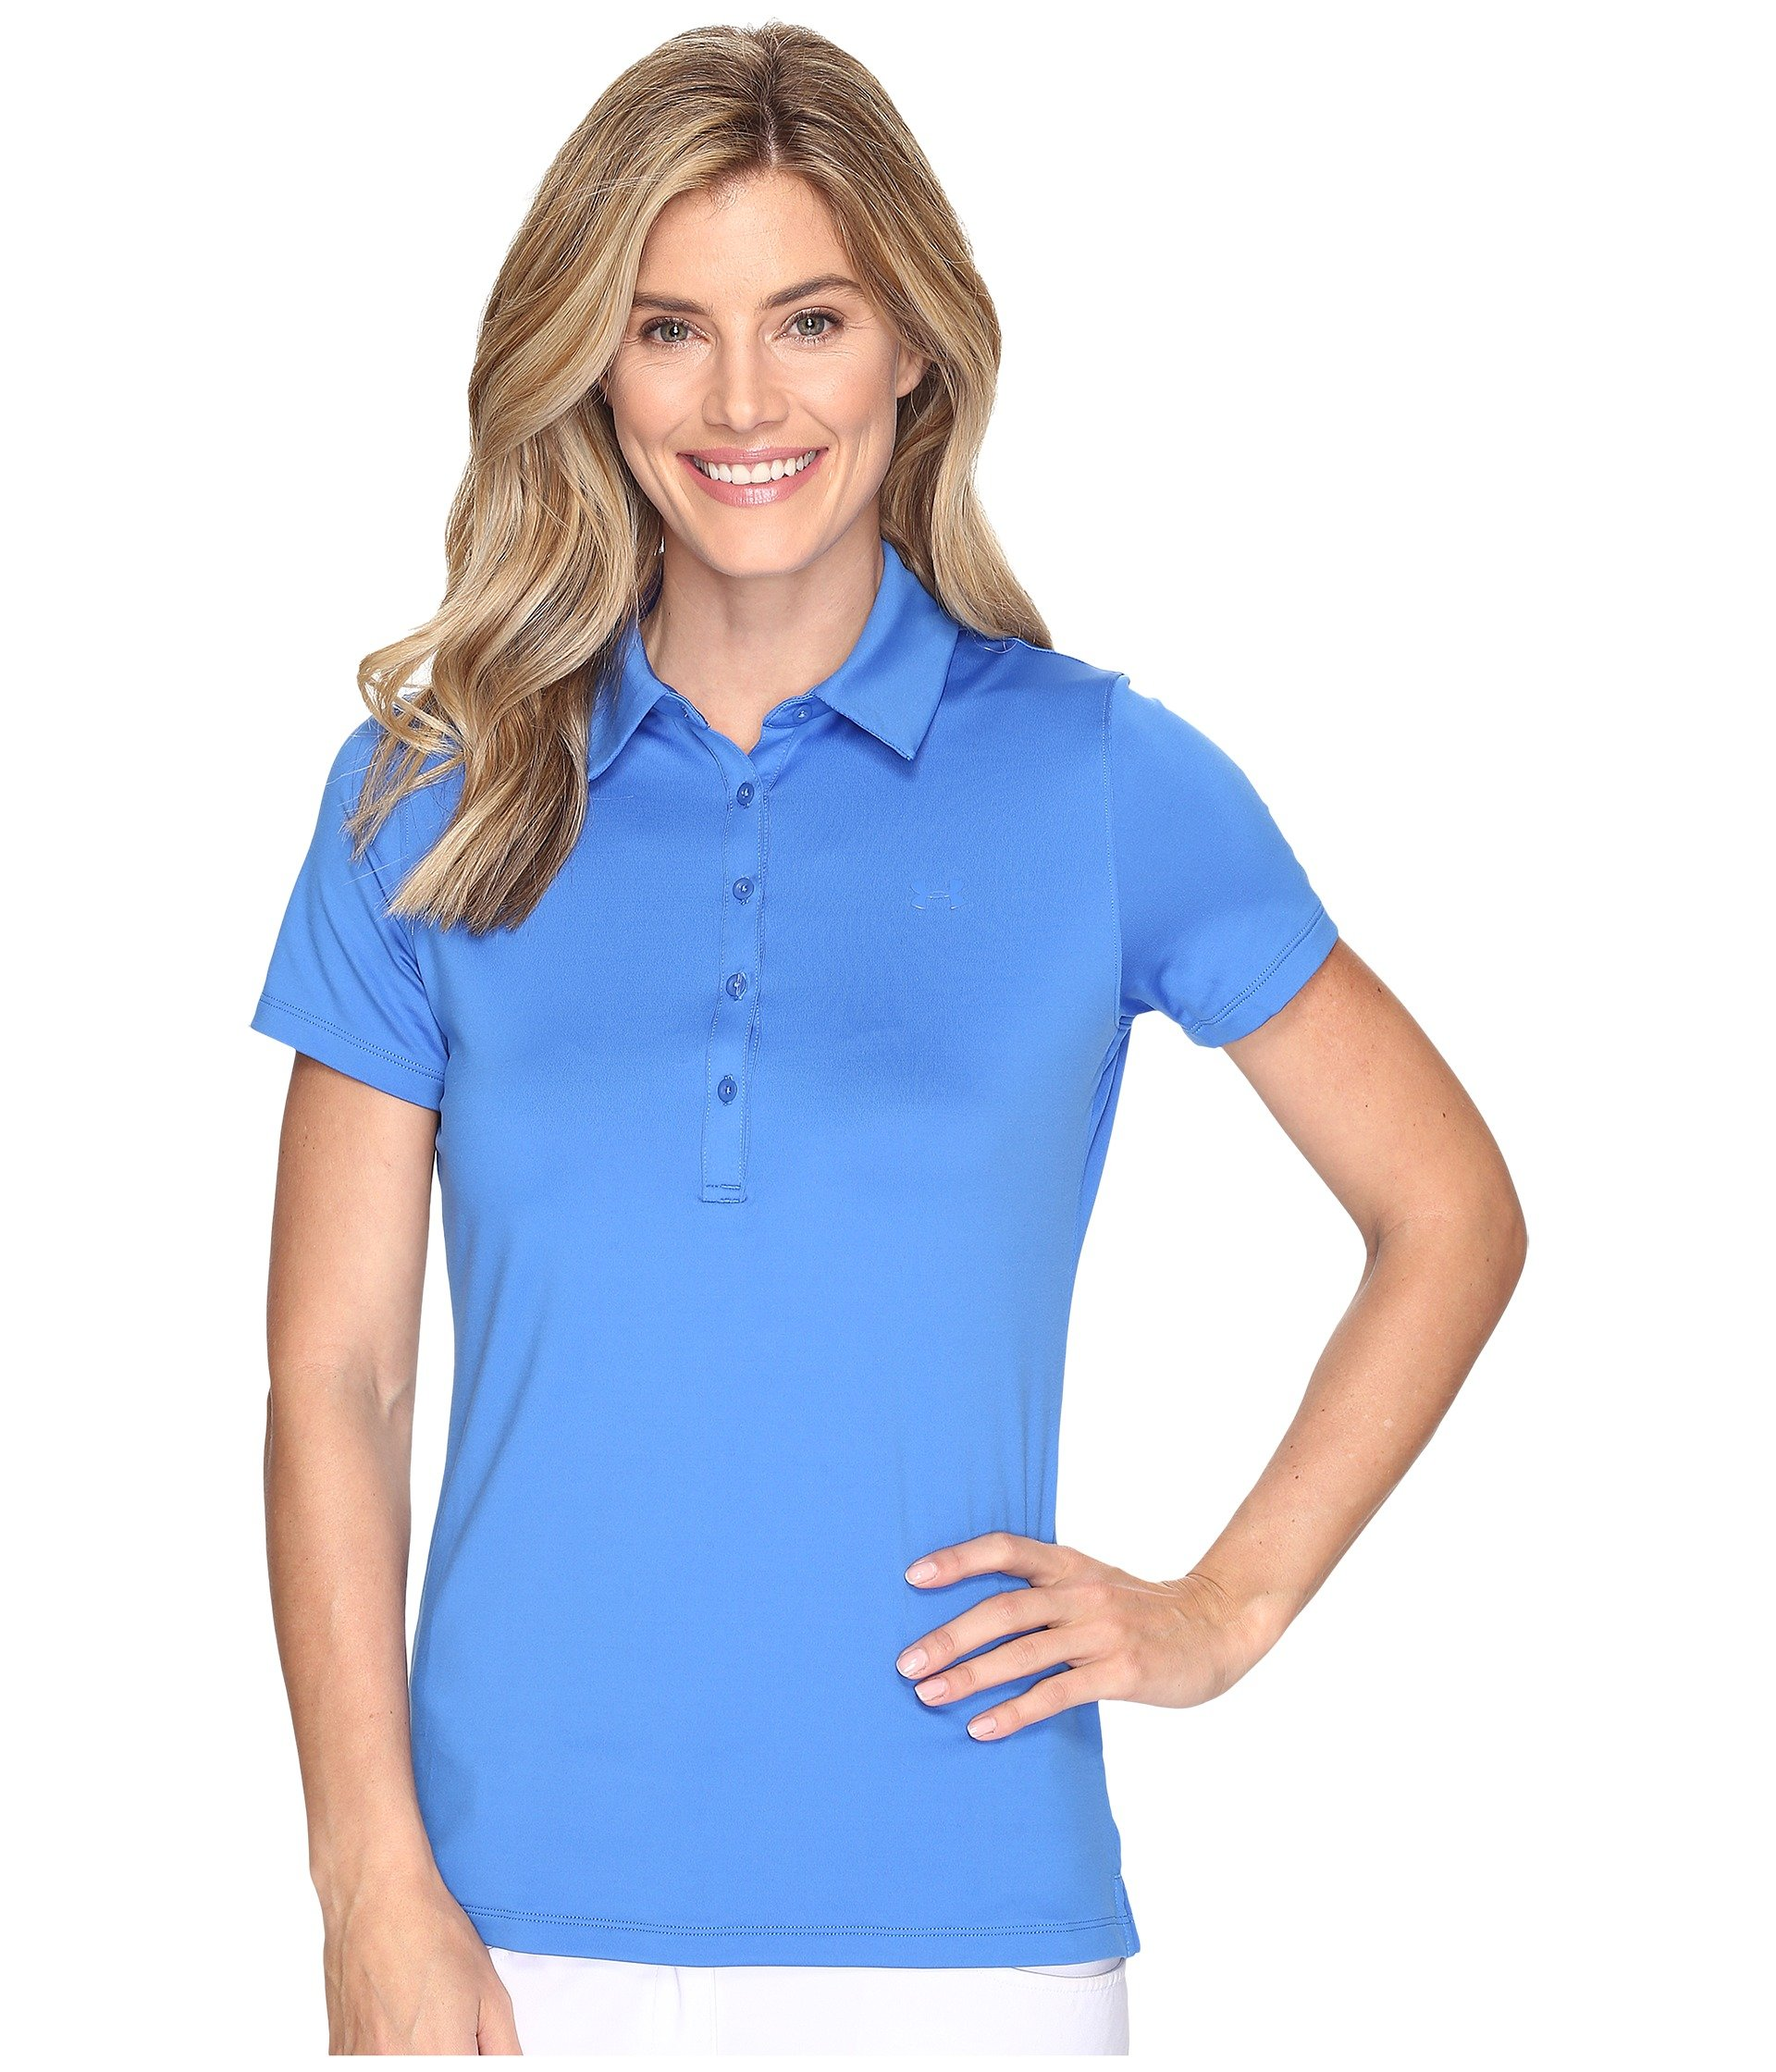 Camiseta Tipo Polo para Mujer Under Armour Golf Zinger Polo  + Under Armour en VeoyCompro.net